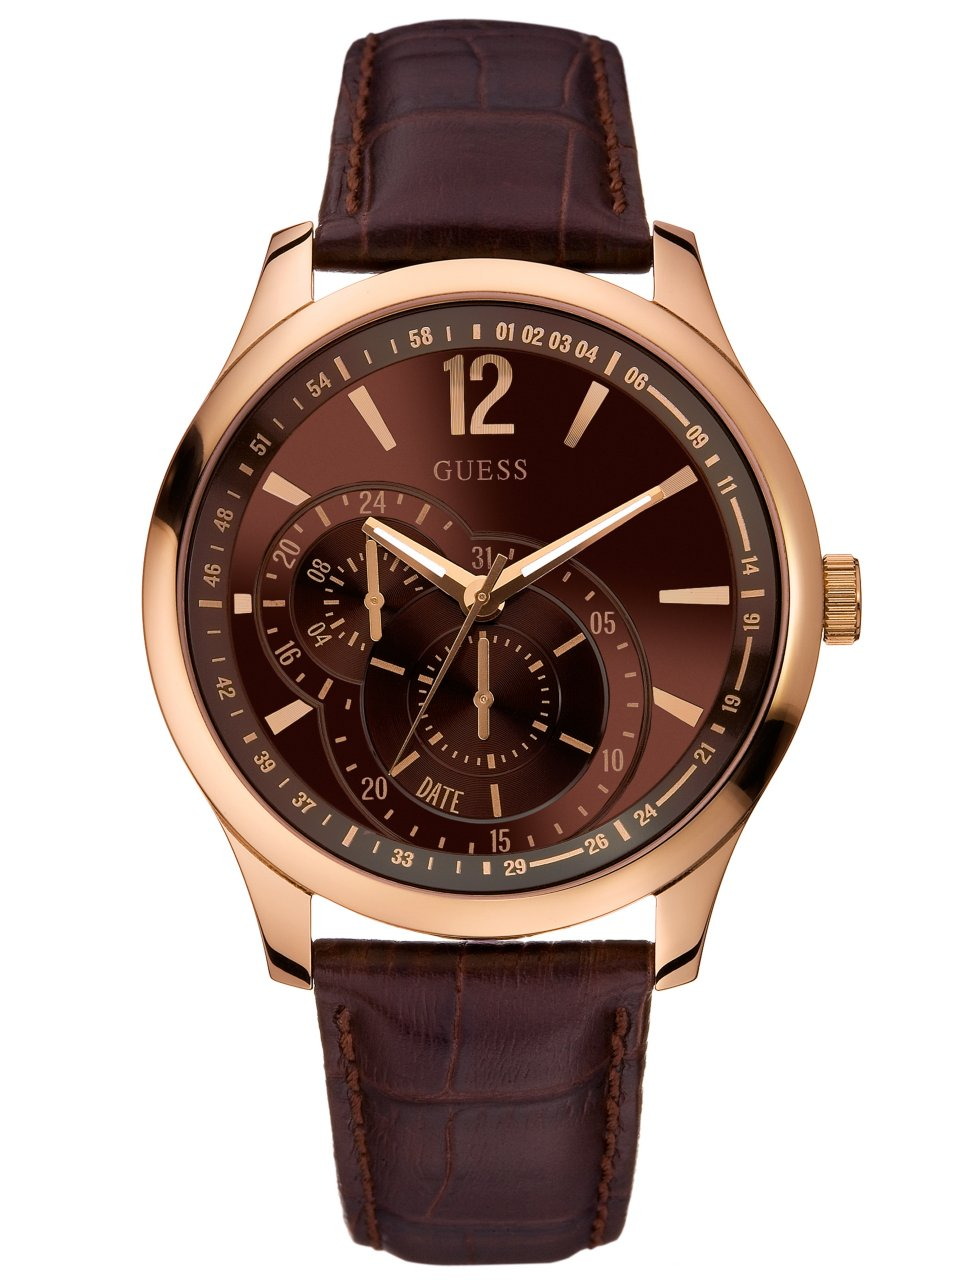 GUESS Contemporary Dress Sport Brown + Rose Go